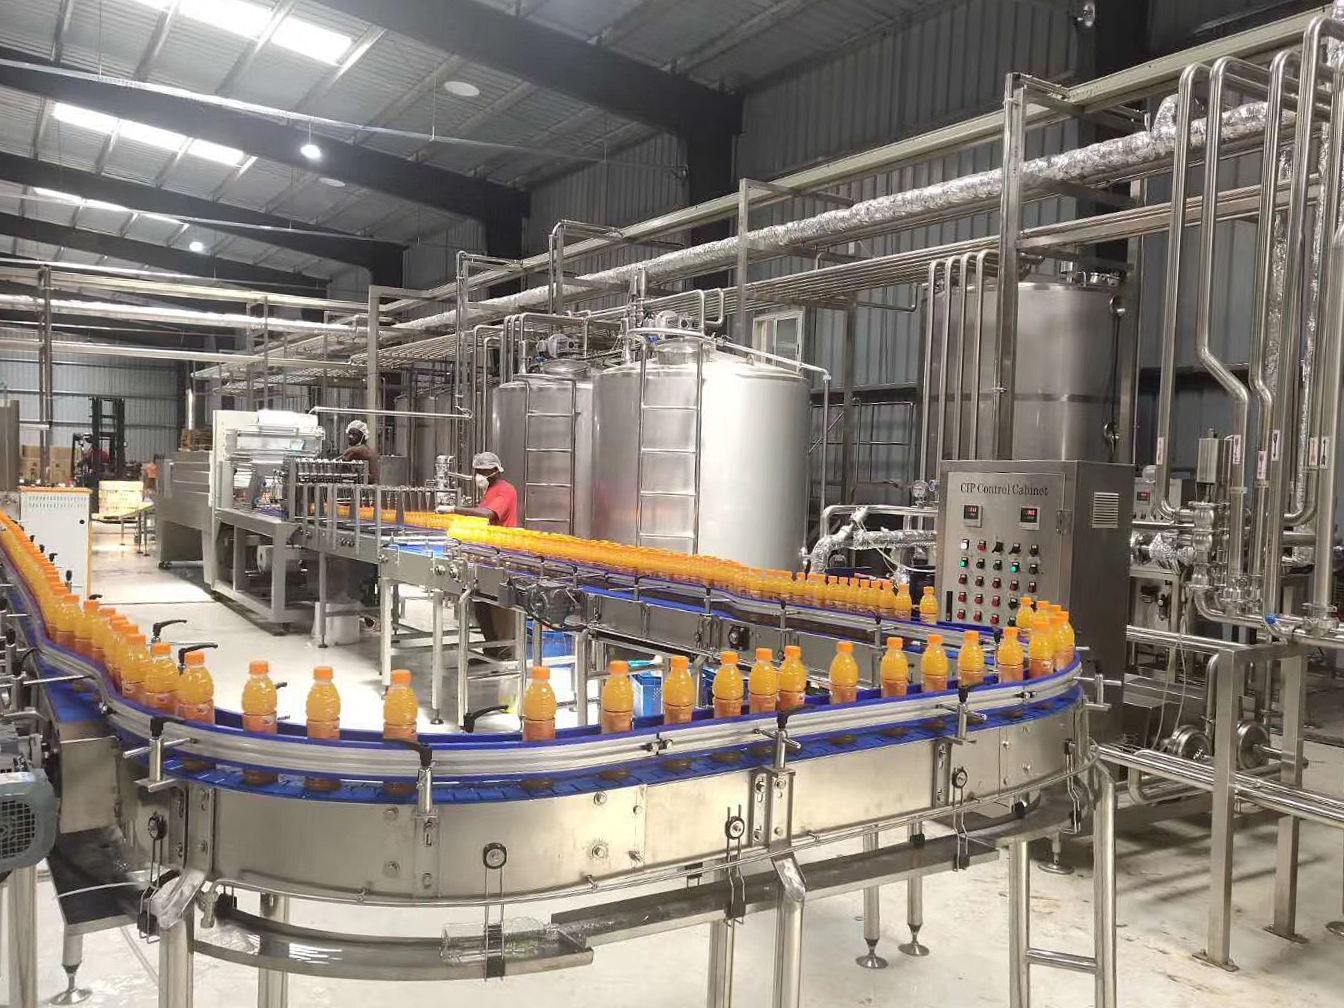 [2020 May 20] The commissioning of the 10,000 bottles per hour juice production line has been completed in Nigeria